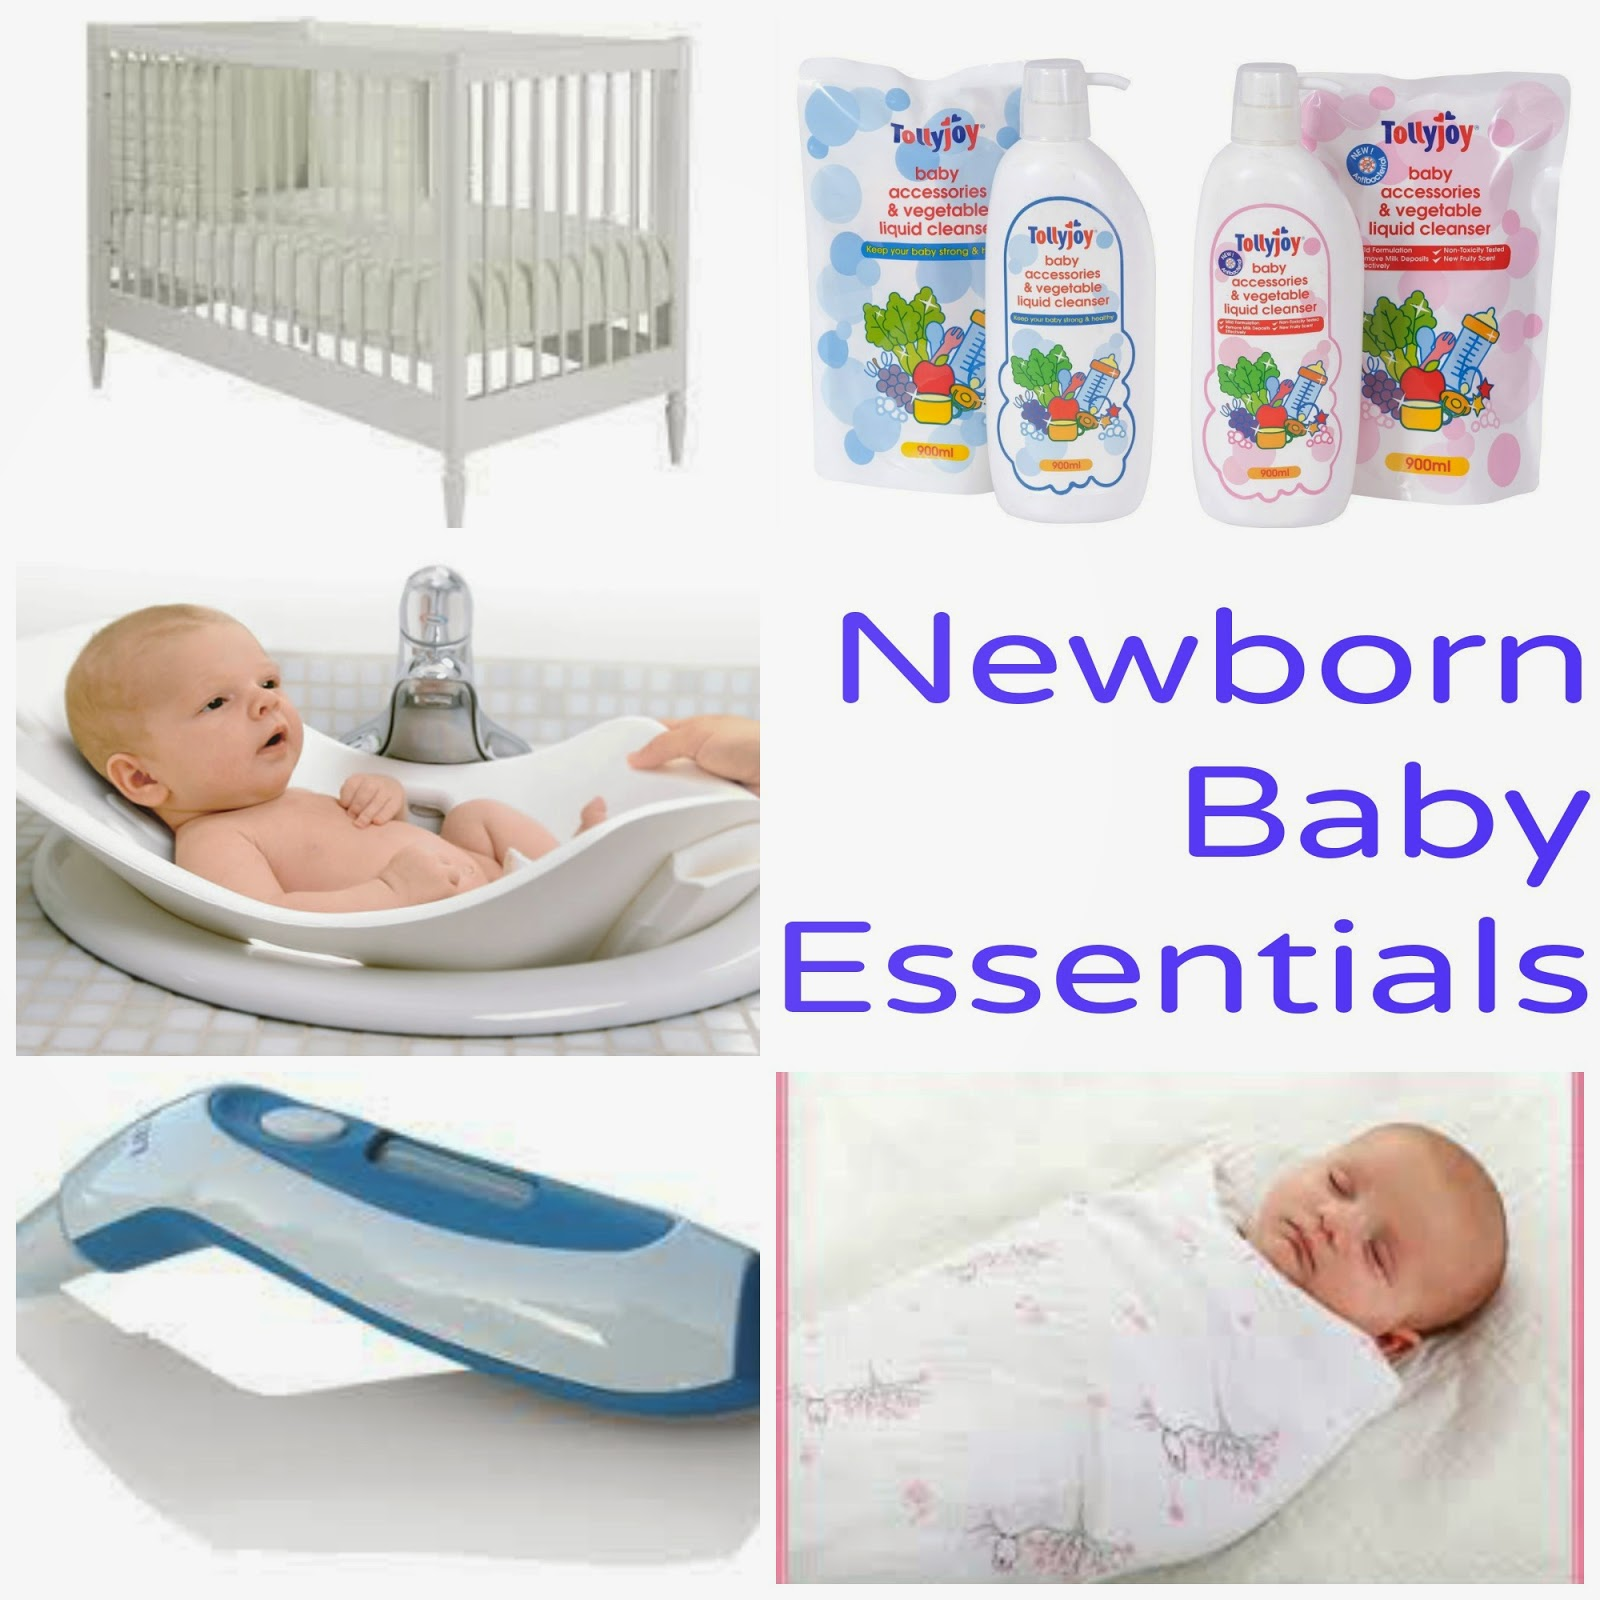 newborn baby essentials: getting ready for your newborn. When it comes to preparing for the arrival of your new baby, there are lots of things to consider, from choosing the cutest clothes and buying cosy sleeping bags to researching handy feeding accessories.